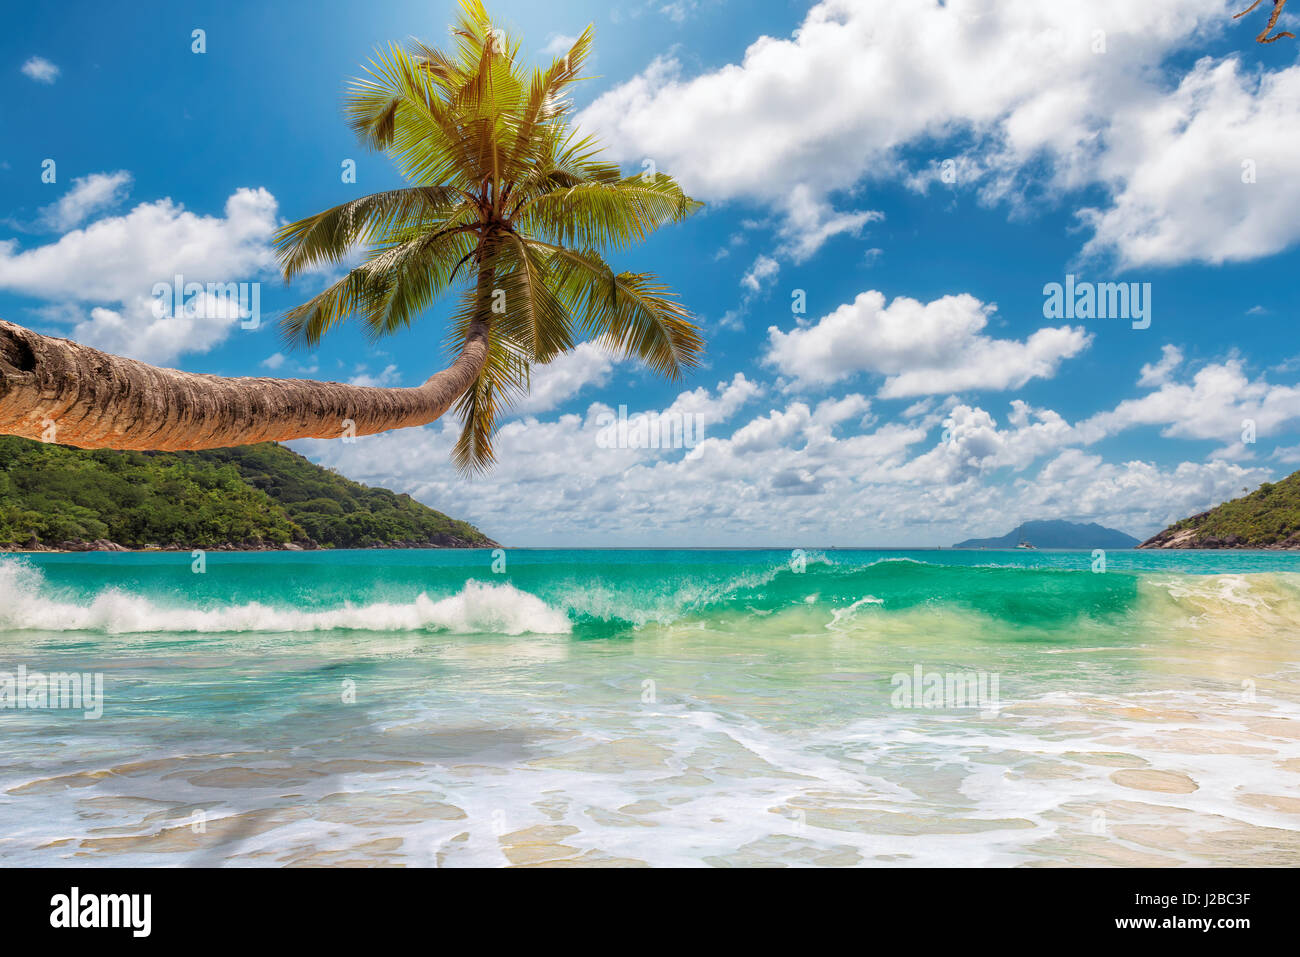 Tropical ocean beach with coconut palm tree in bright sunny day. - Stock Image